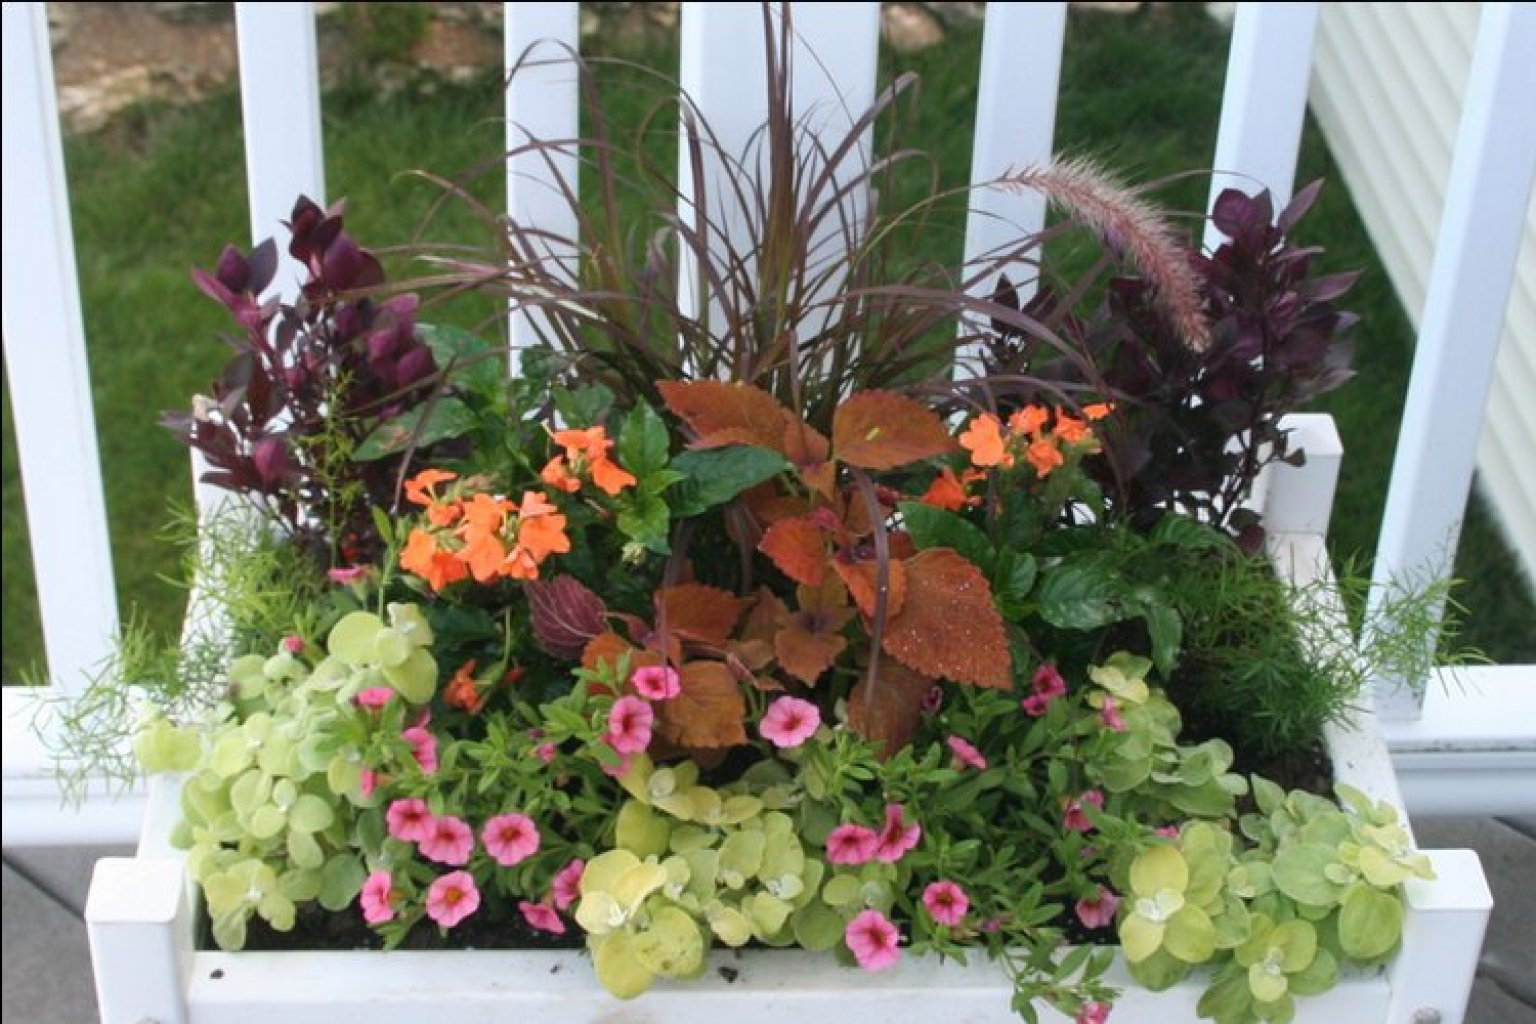 Container gardening basics the dirt on soil huffpost - Container gardening basics ...